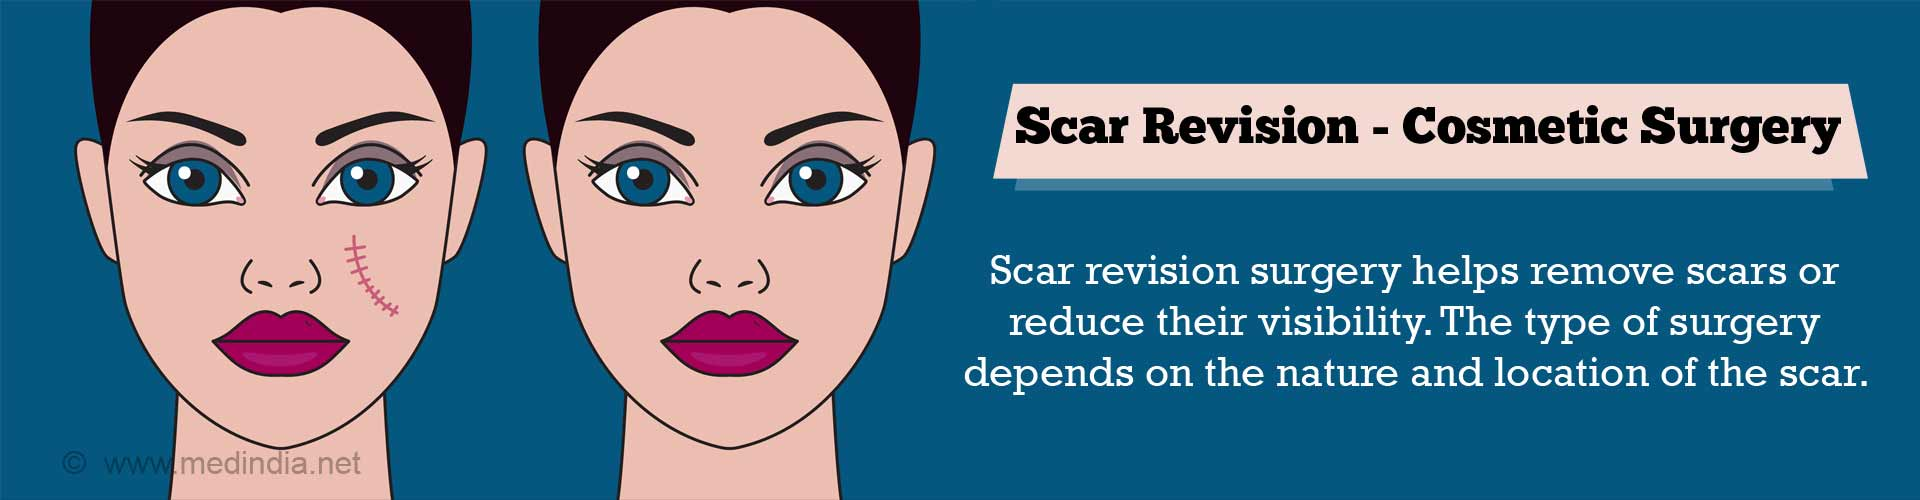 scar-revision-cosmetic-surgery